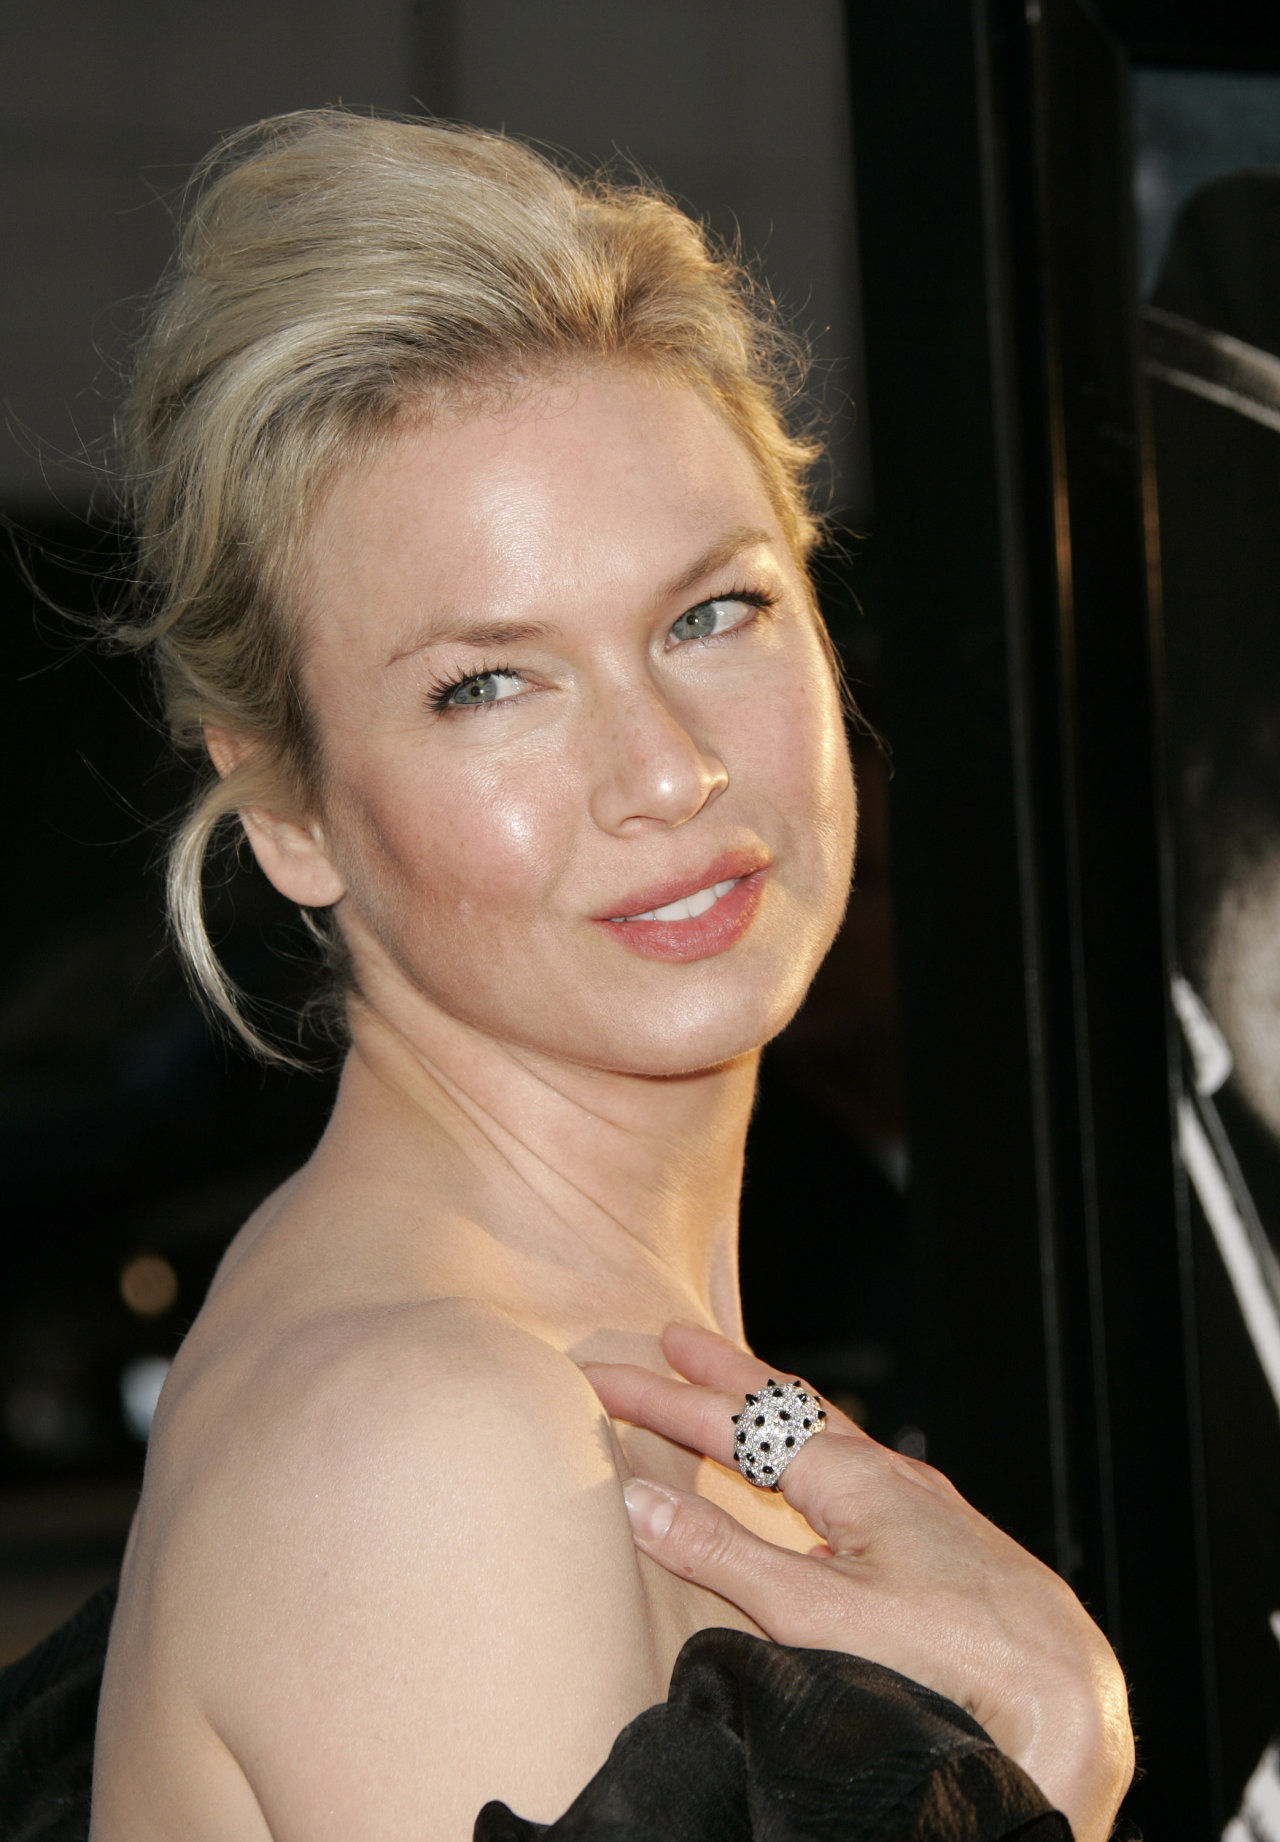 Renee Zellweger Bra Size Age Weight Height Measurements Celebrity Sizes